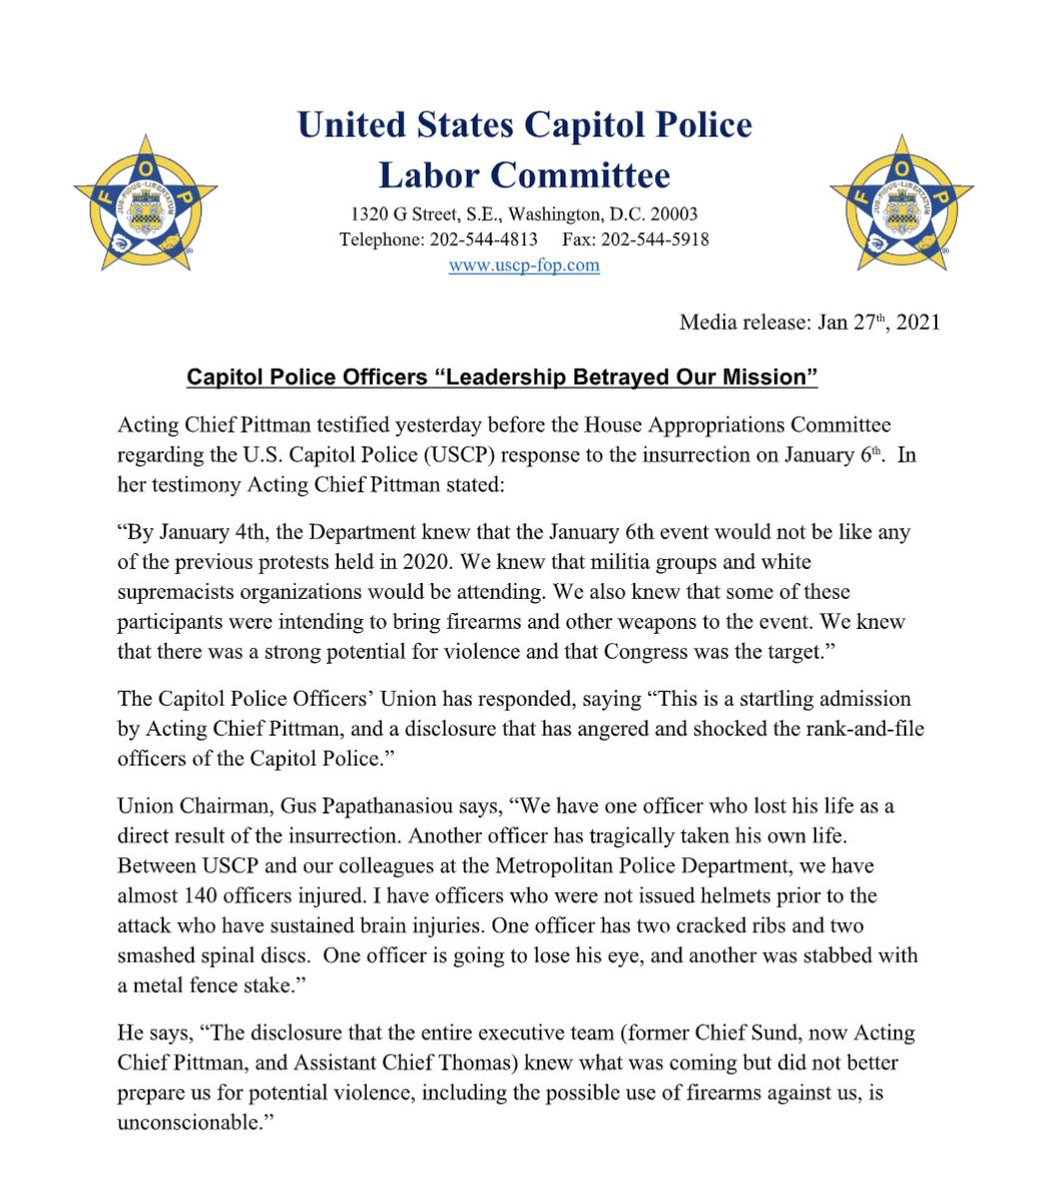 NEW: SCATHING STATEMENT from Capitol Police union on failed leadership in department before and during Jan. 6 attack on the Capitol: